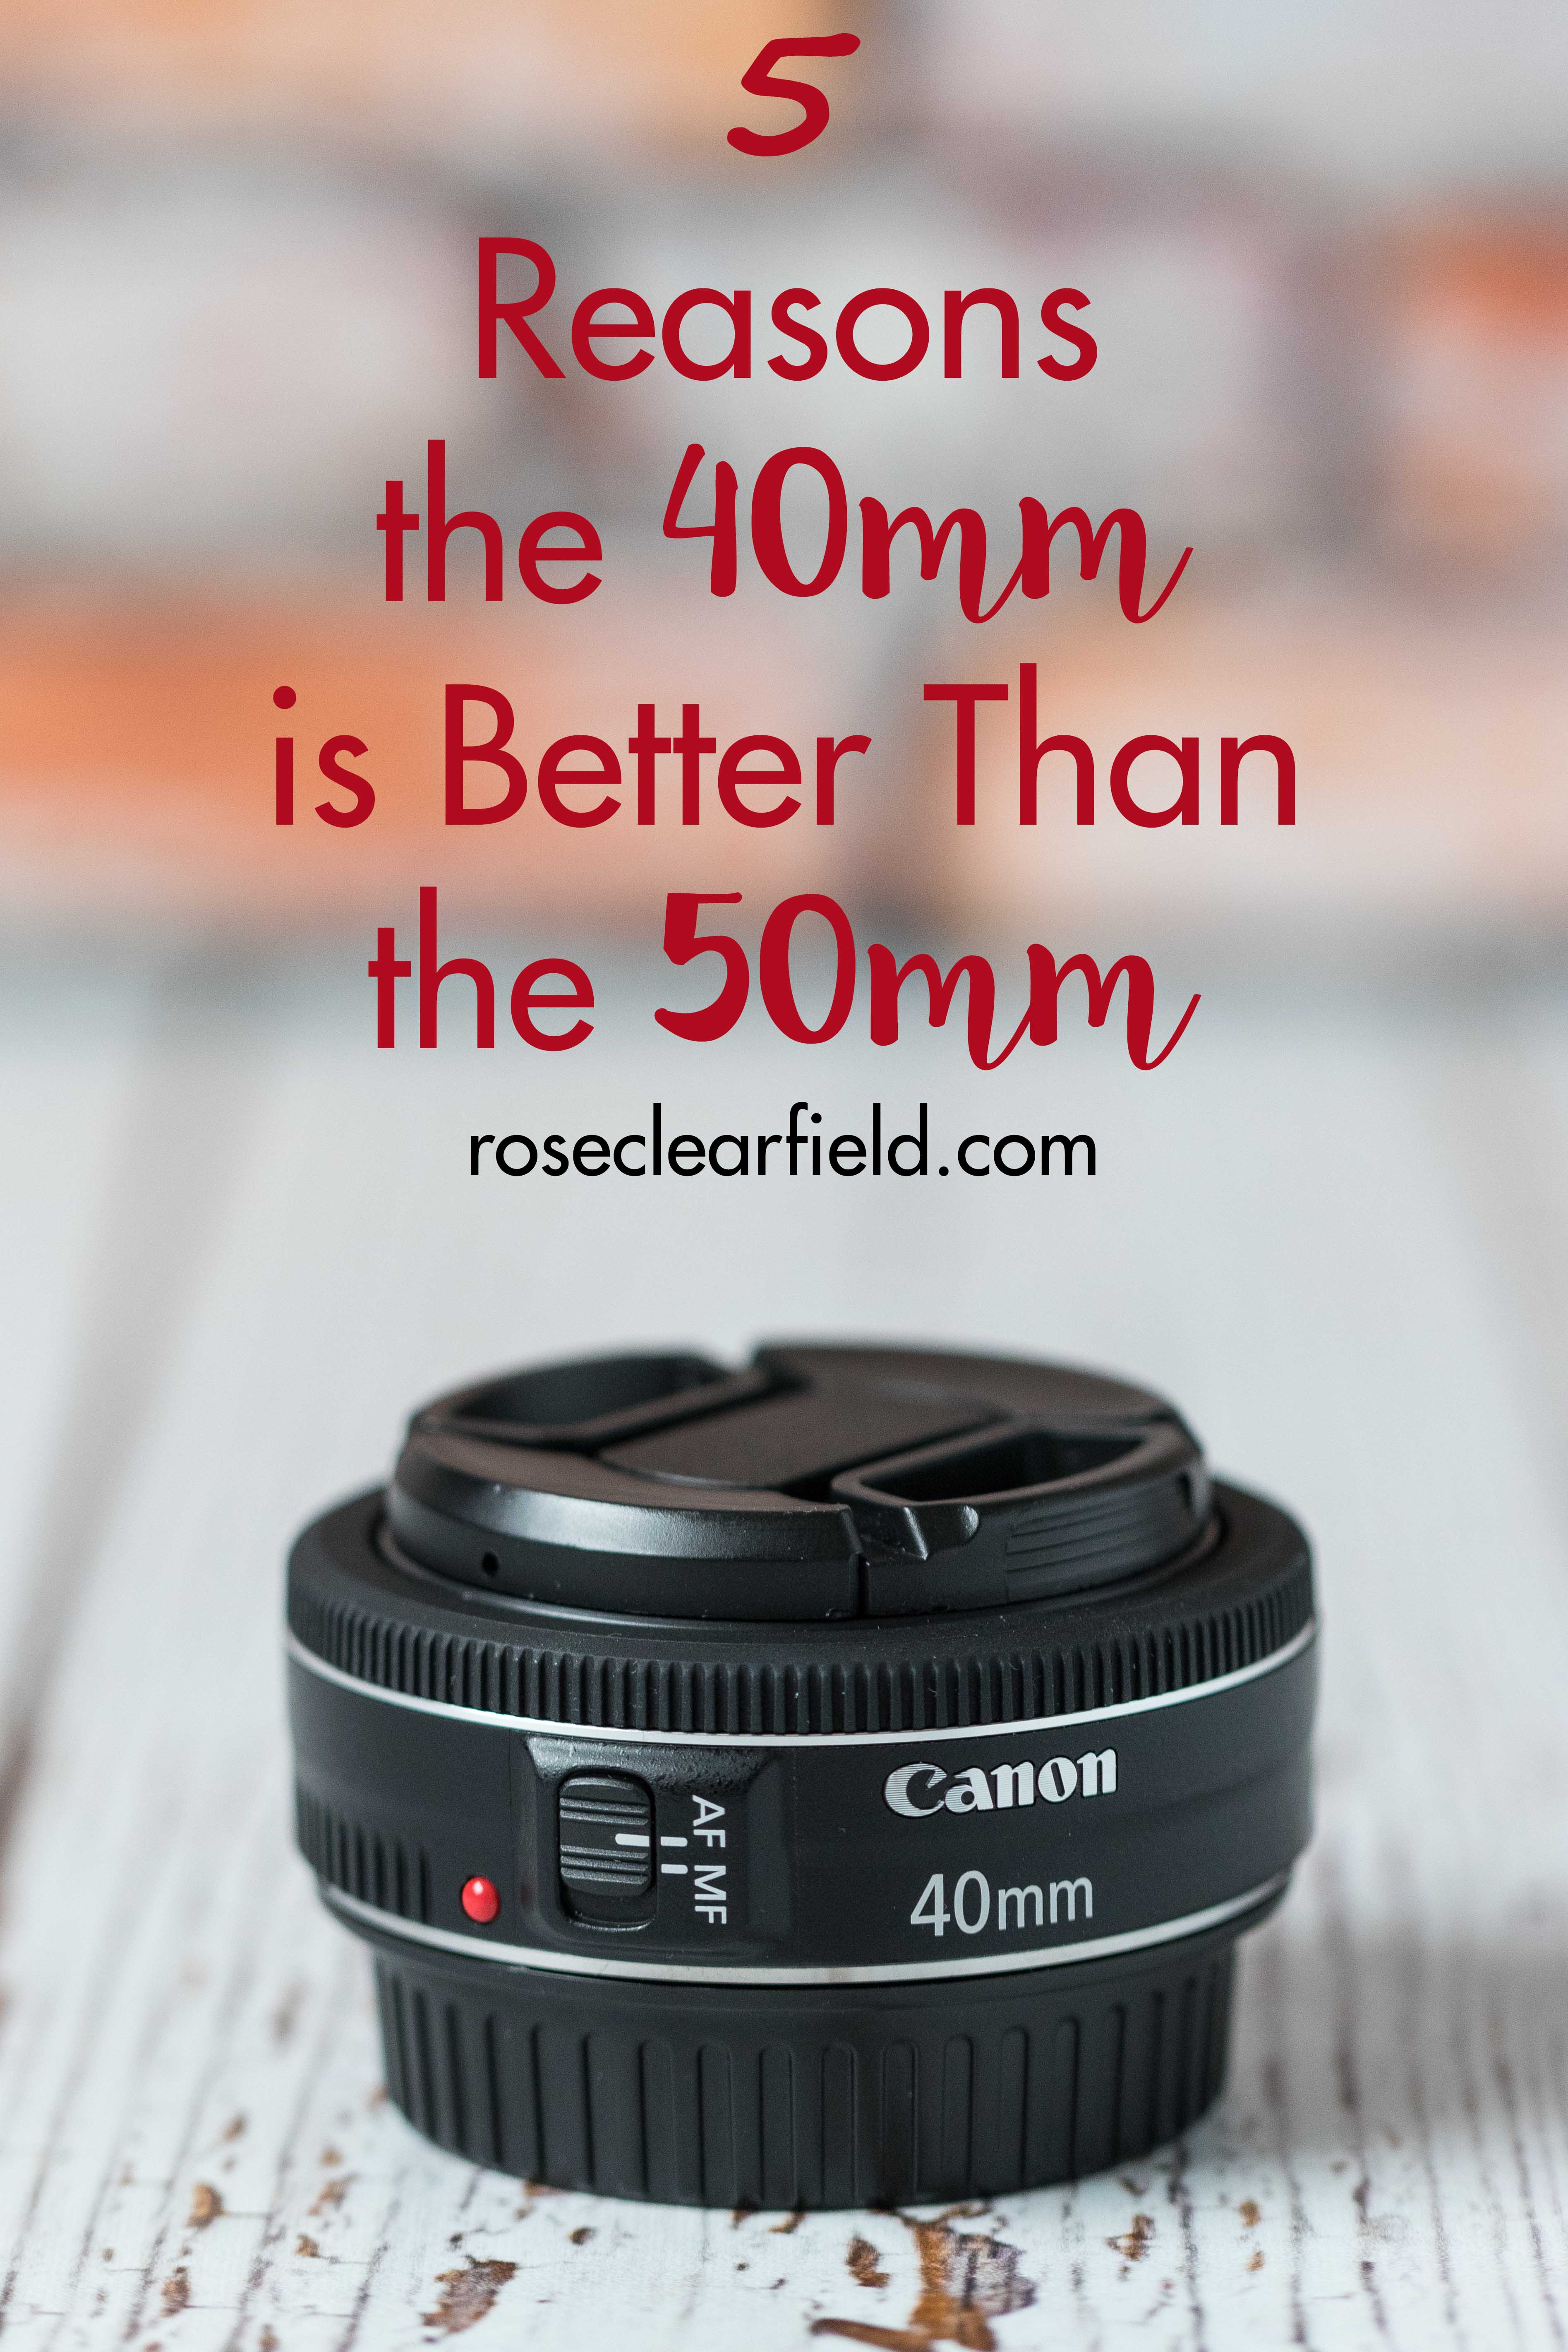 5 Reasons the 40mm is Better Than the 50mm | http://www.roseclearfield.com